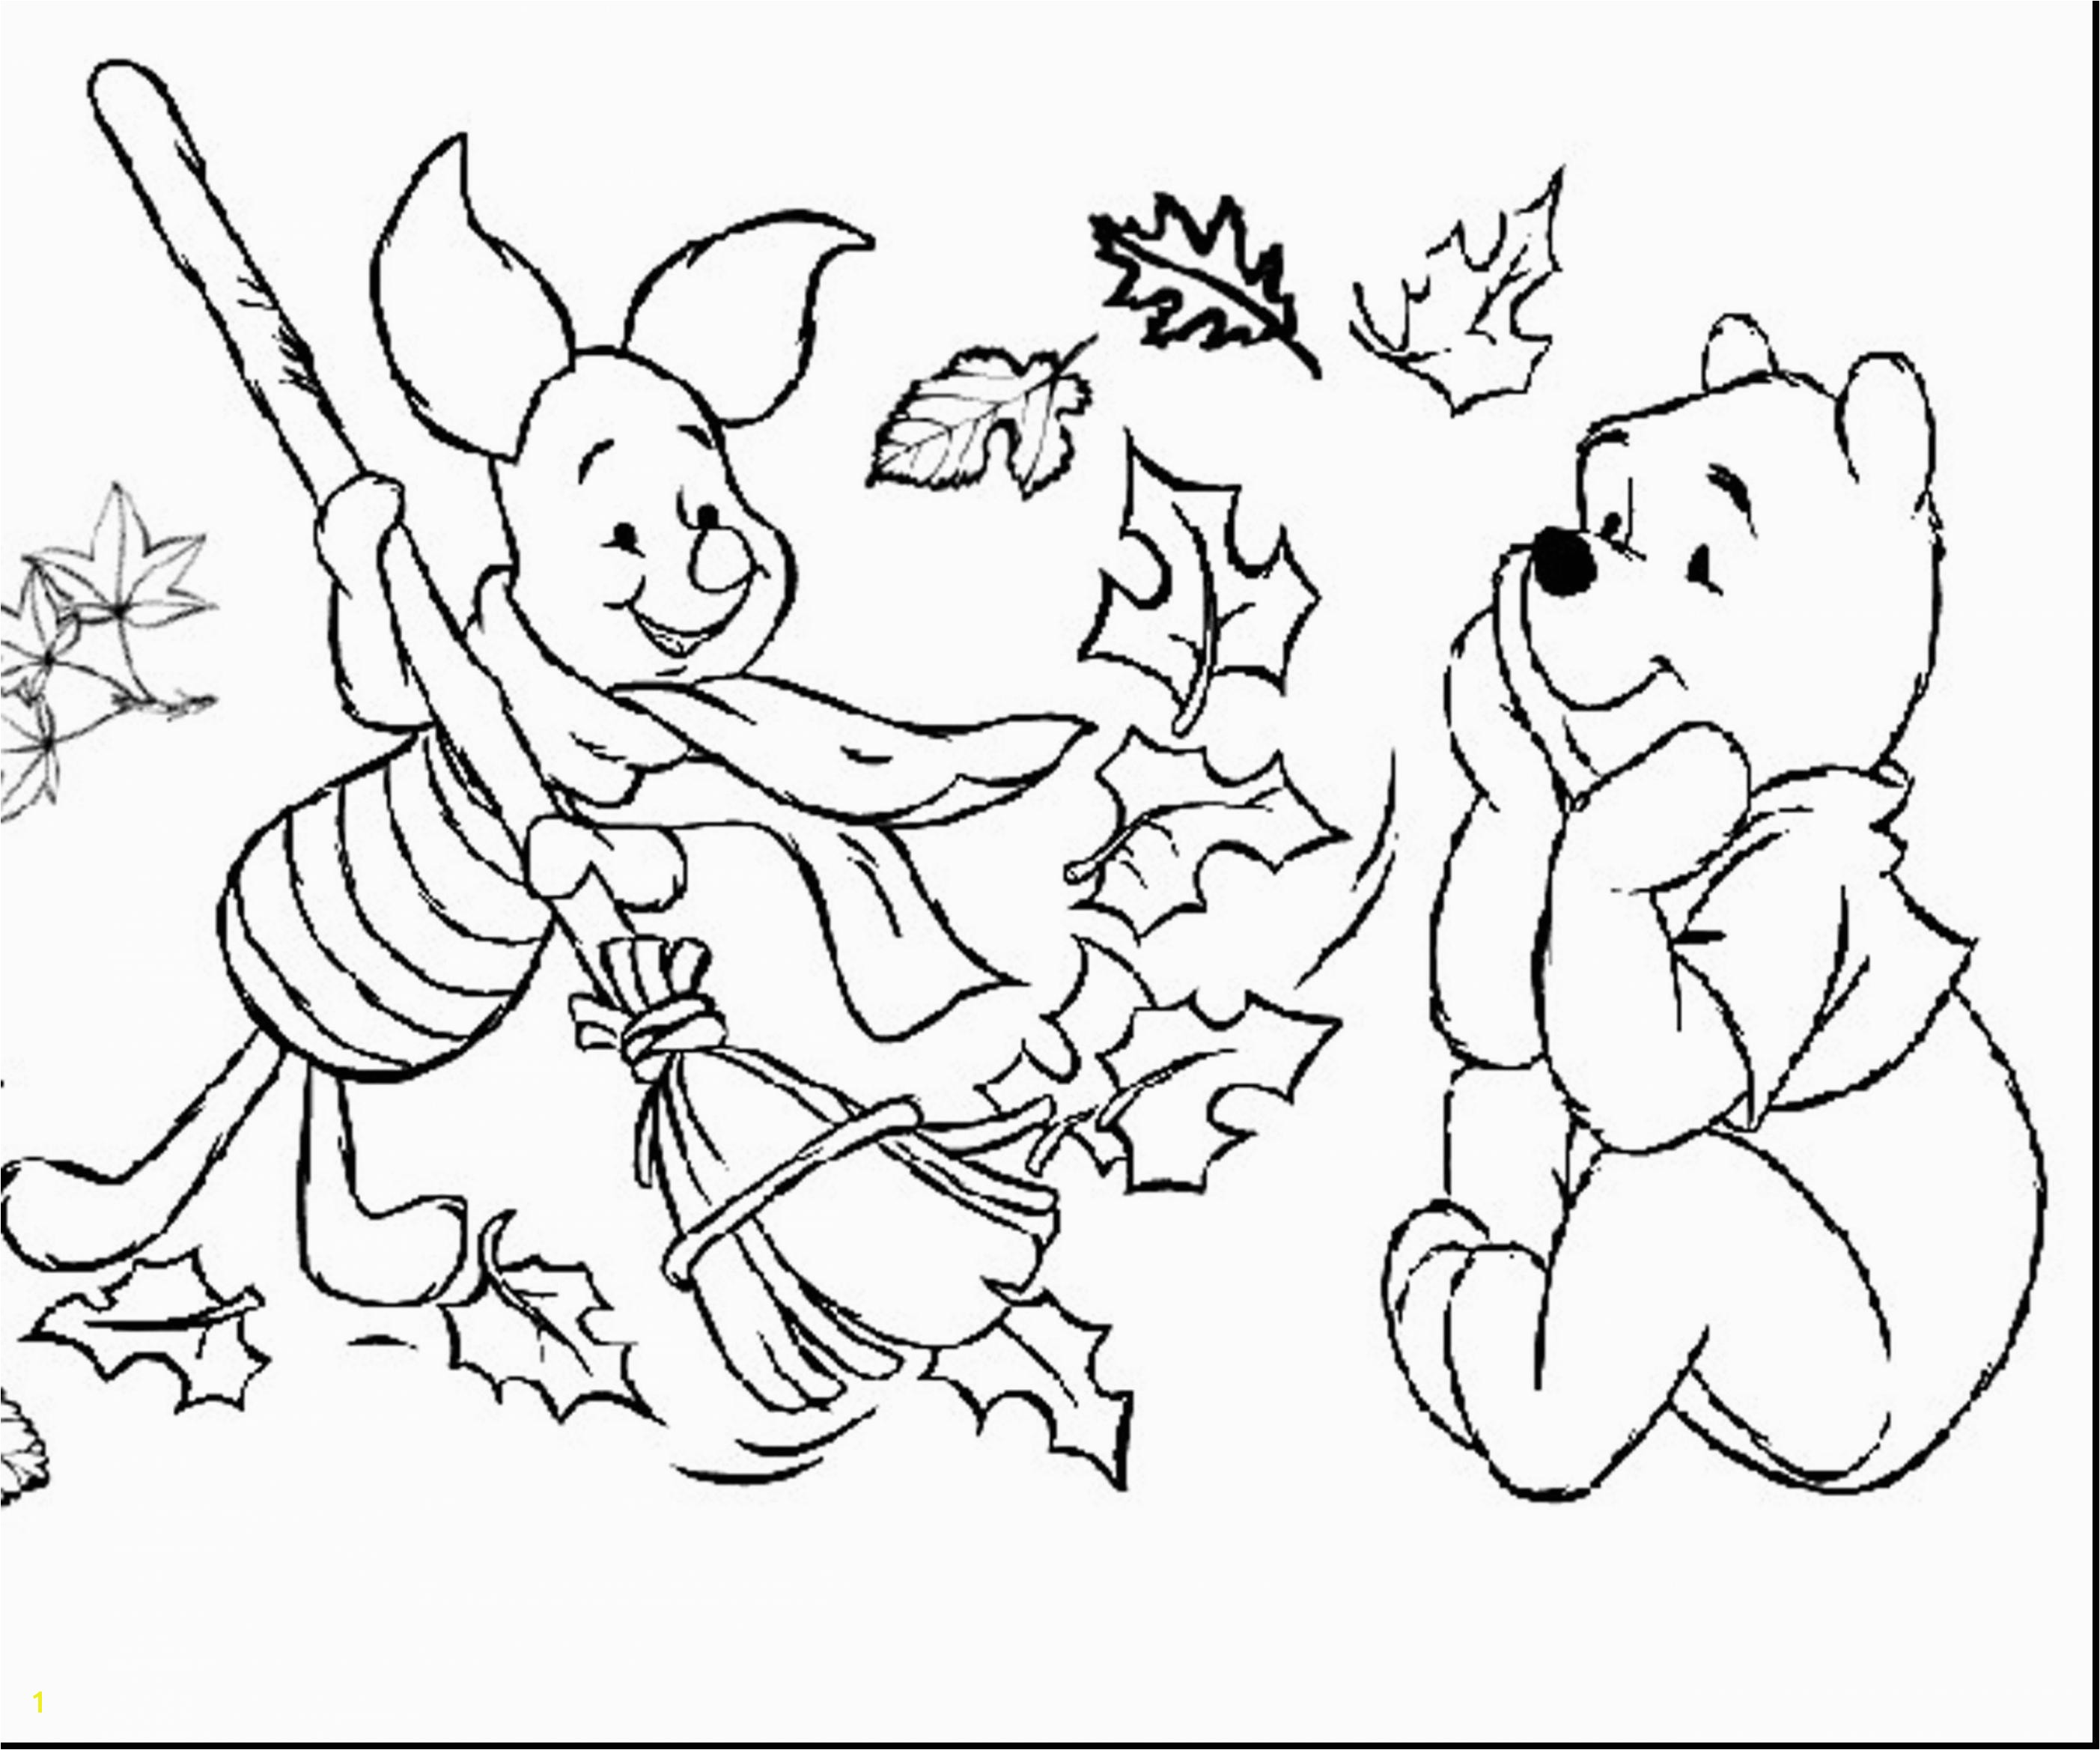 Jerry From tom and Jerry Coloring Pages Free Printable tom and Jerry Coloring Pages Awesome Appealing Fall